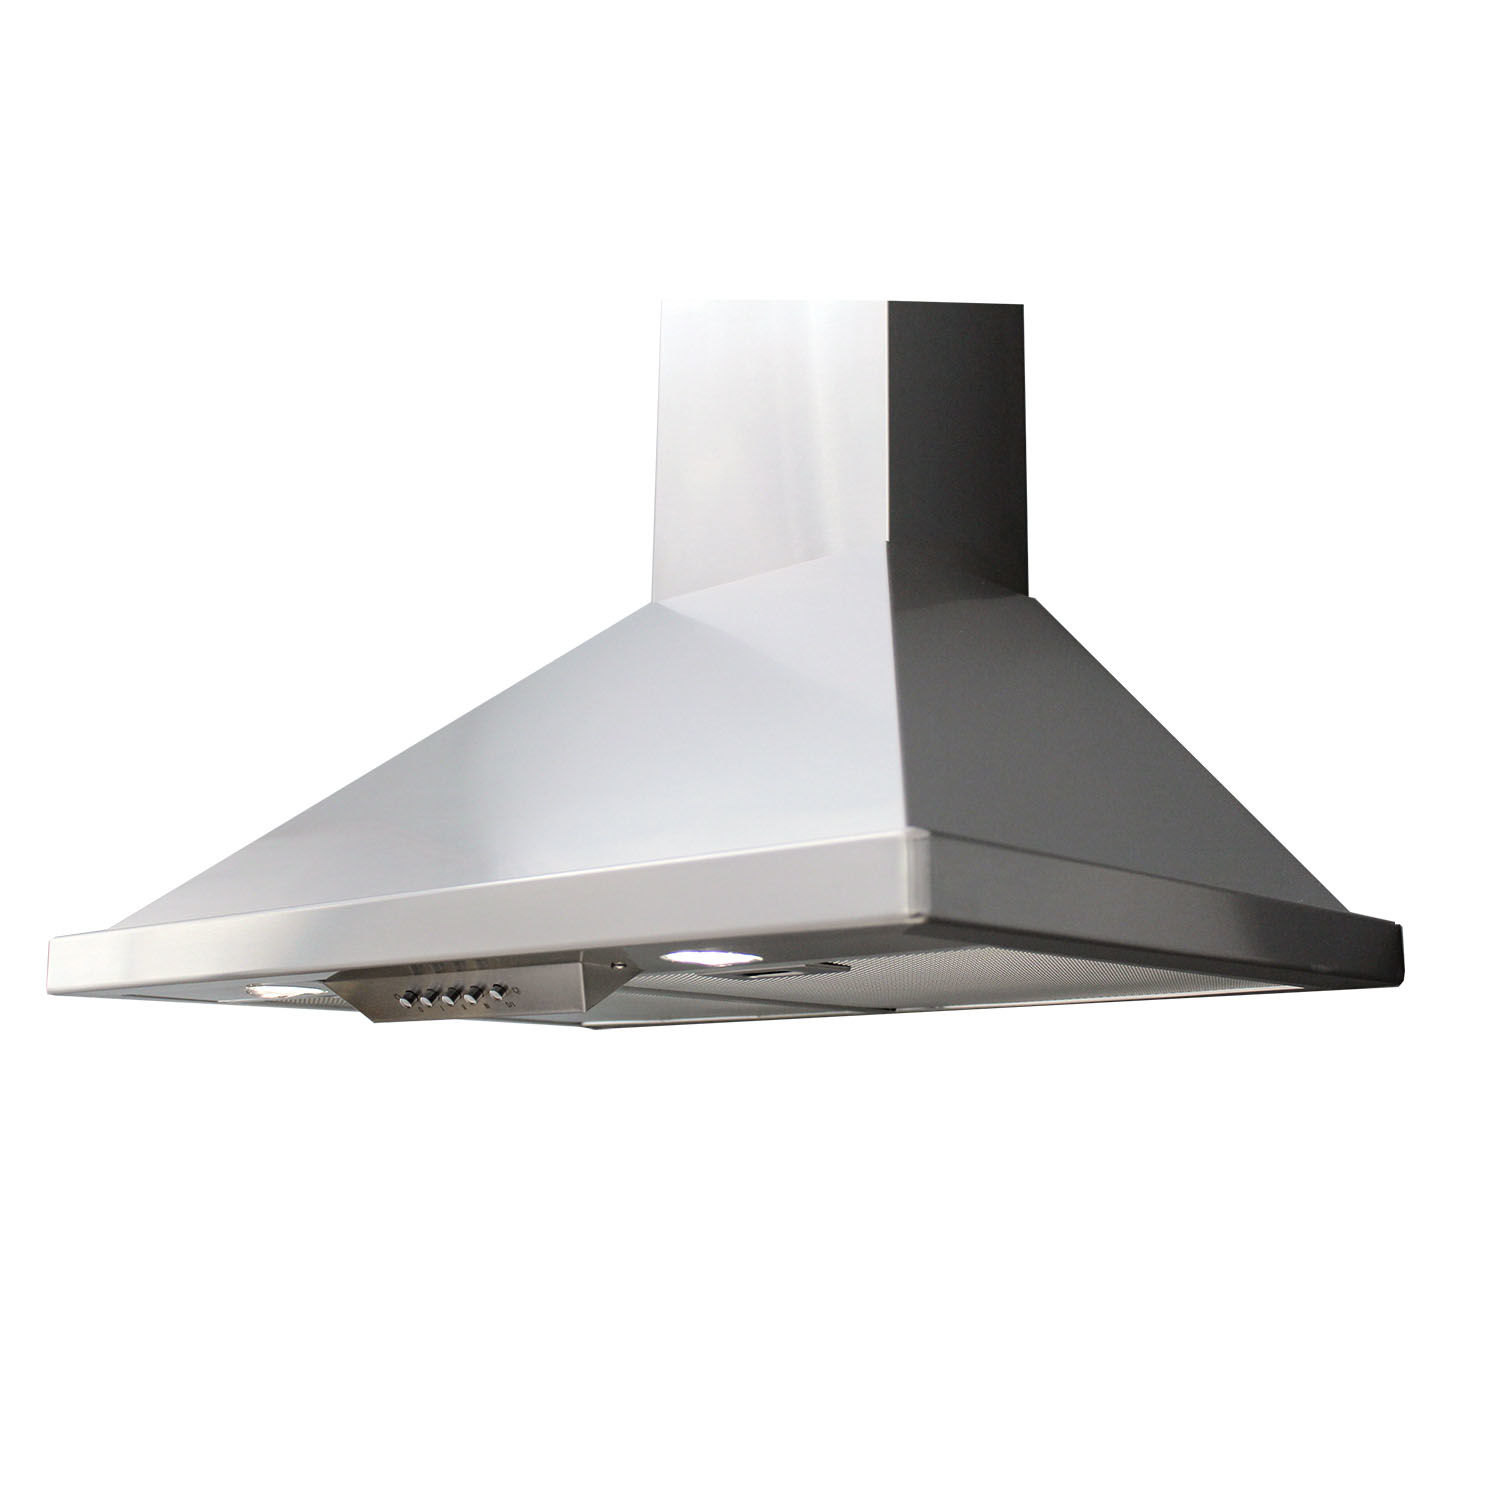 Shop All Miseno Wall Mounted Range Hoods!